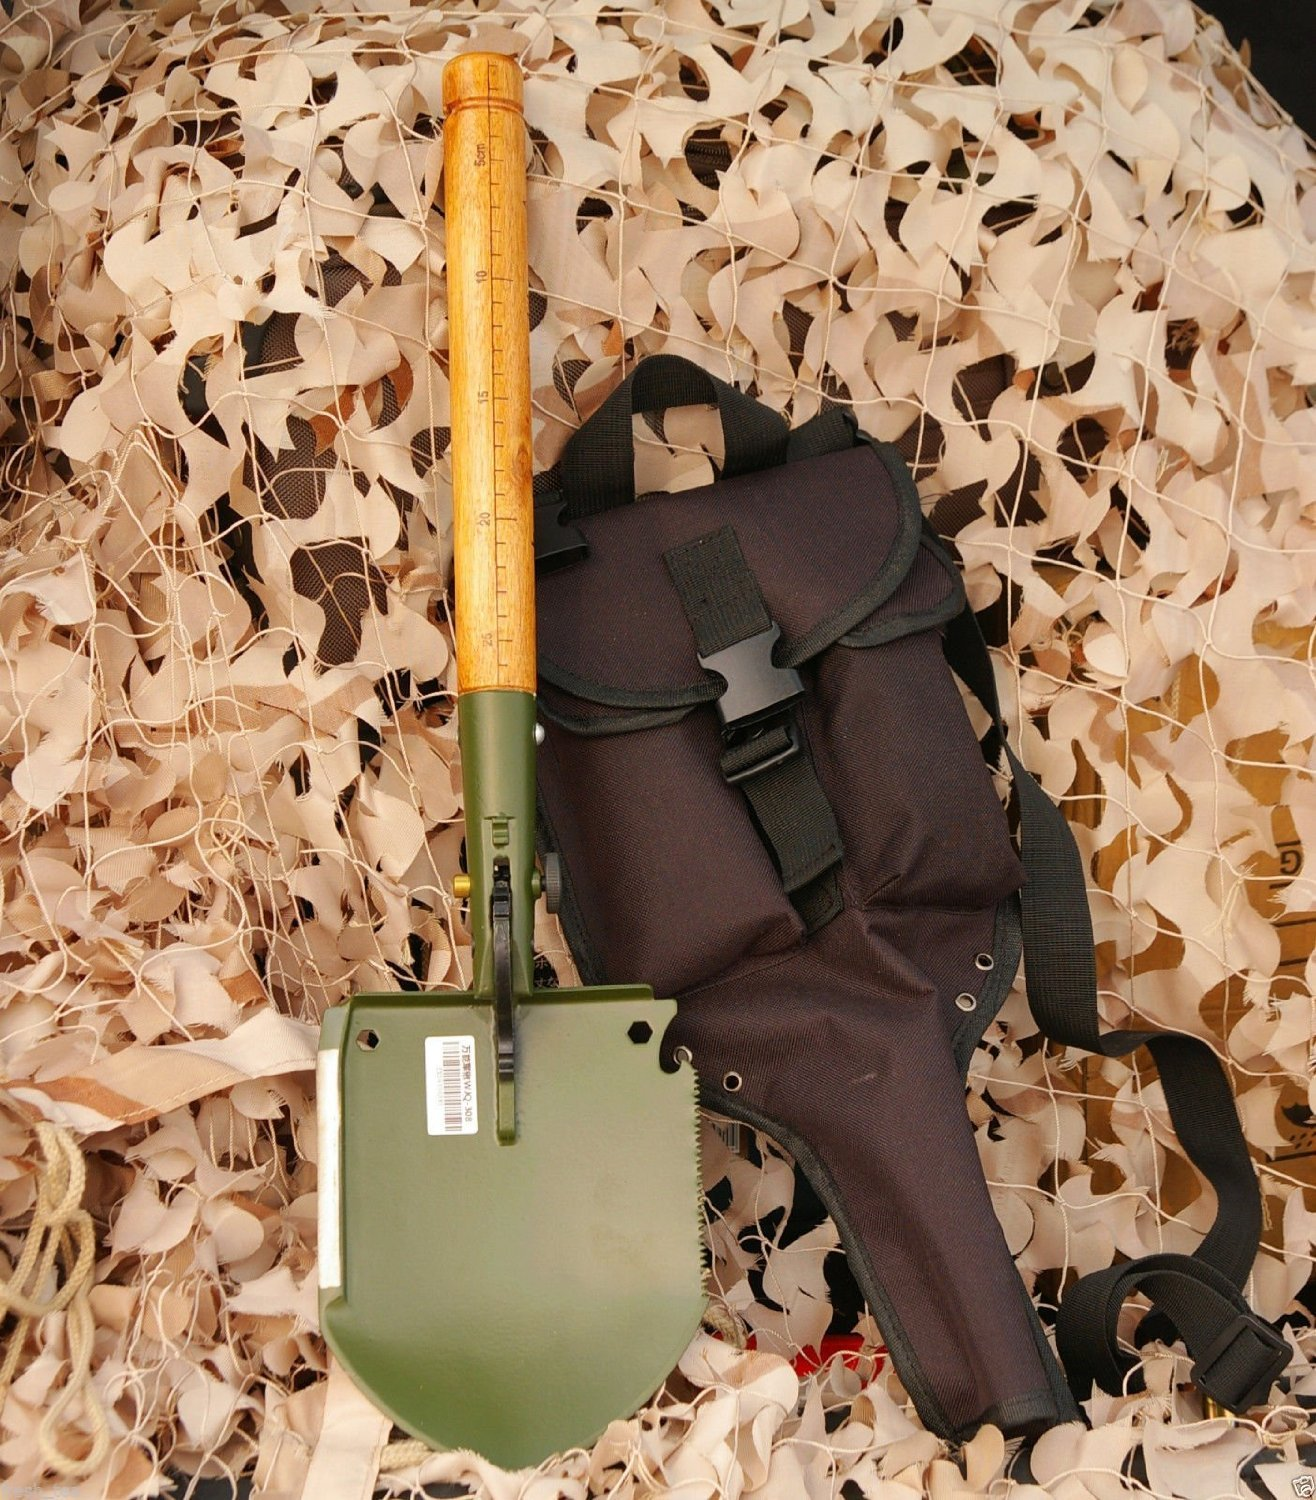 WJQ-308 Chinese Military Shovel Emergency Tools by WJQ-308 (Image #1)